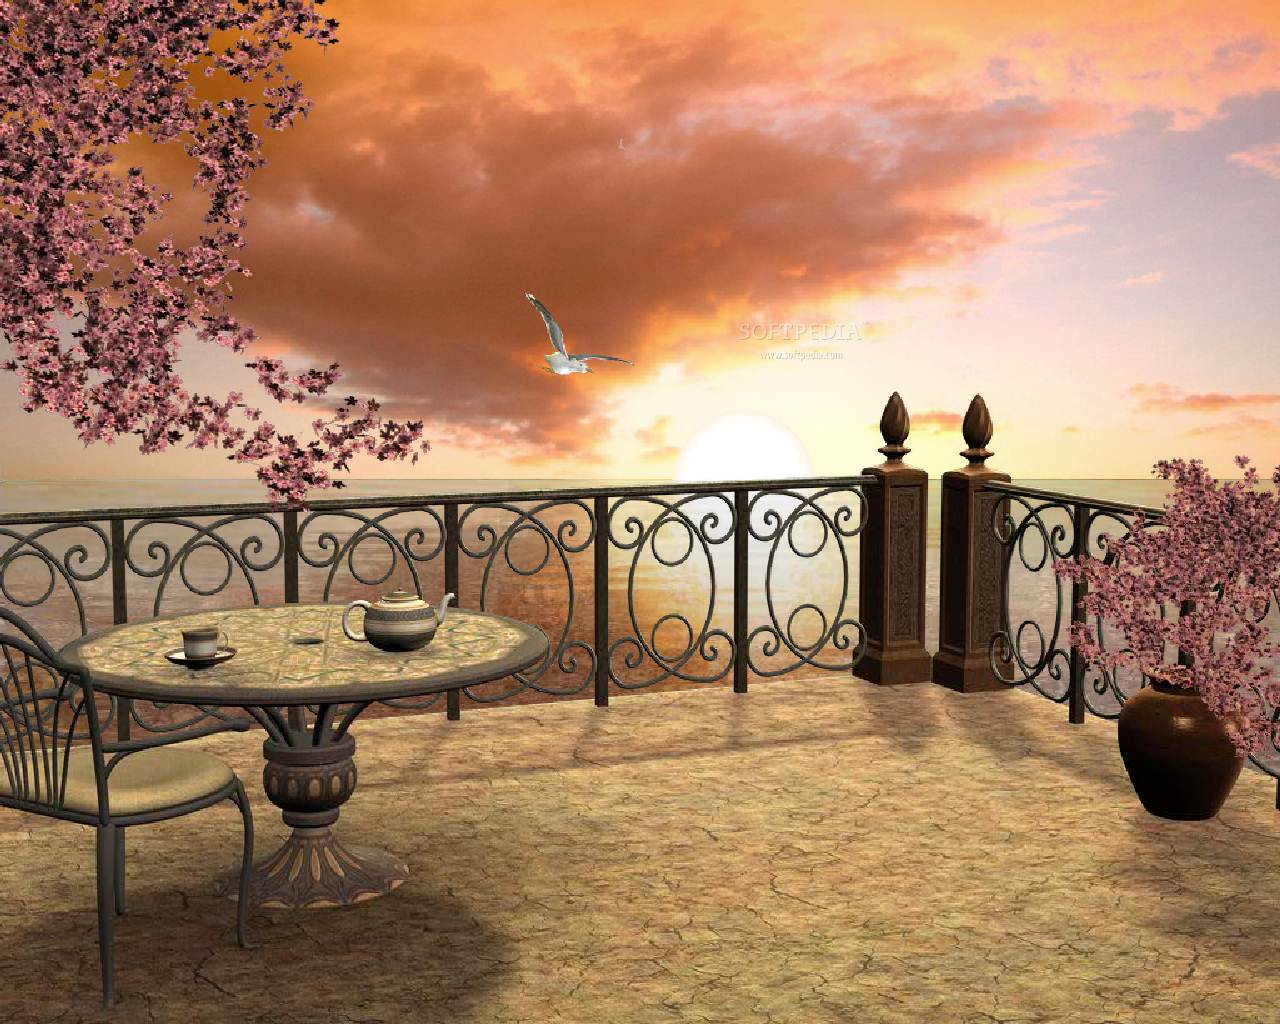 http://1.bp.blogspot.com/-HG7bVGOOJYg/Tazhbcc9R5I/AAAAAAAAA4w/JxYpZYIUuh0/s1600/Seaside-Cafe-Animated-Wallpaper_1.jpg